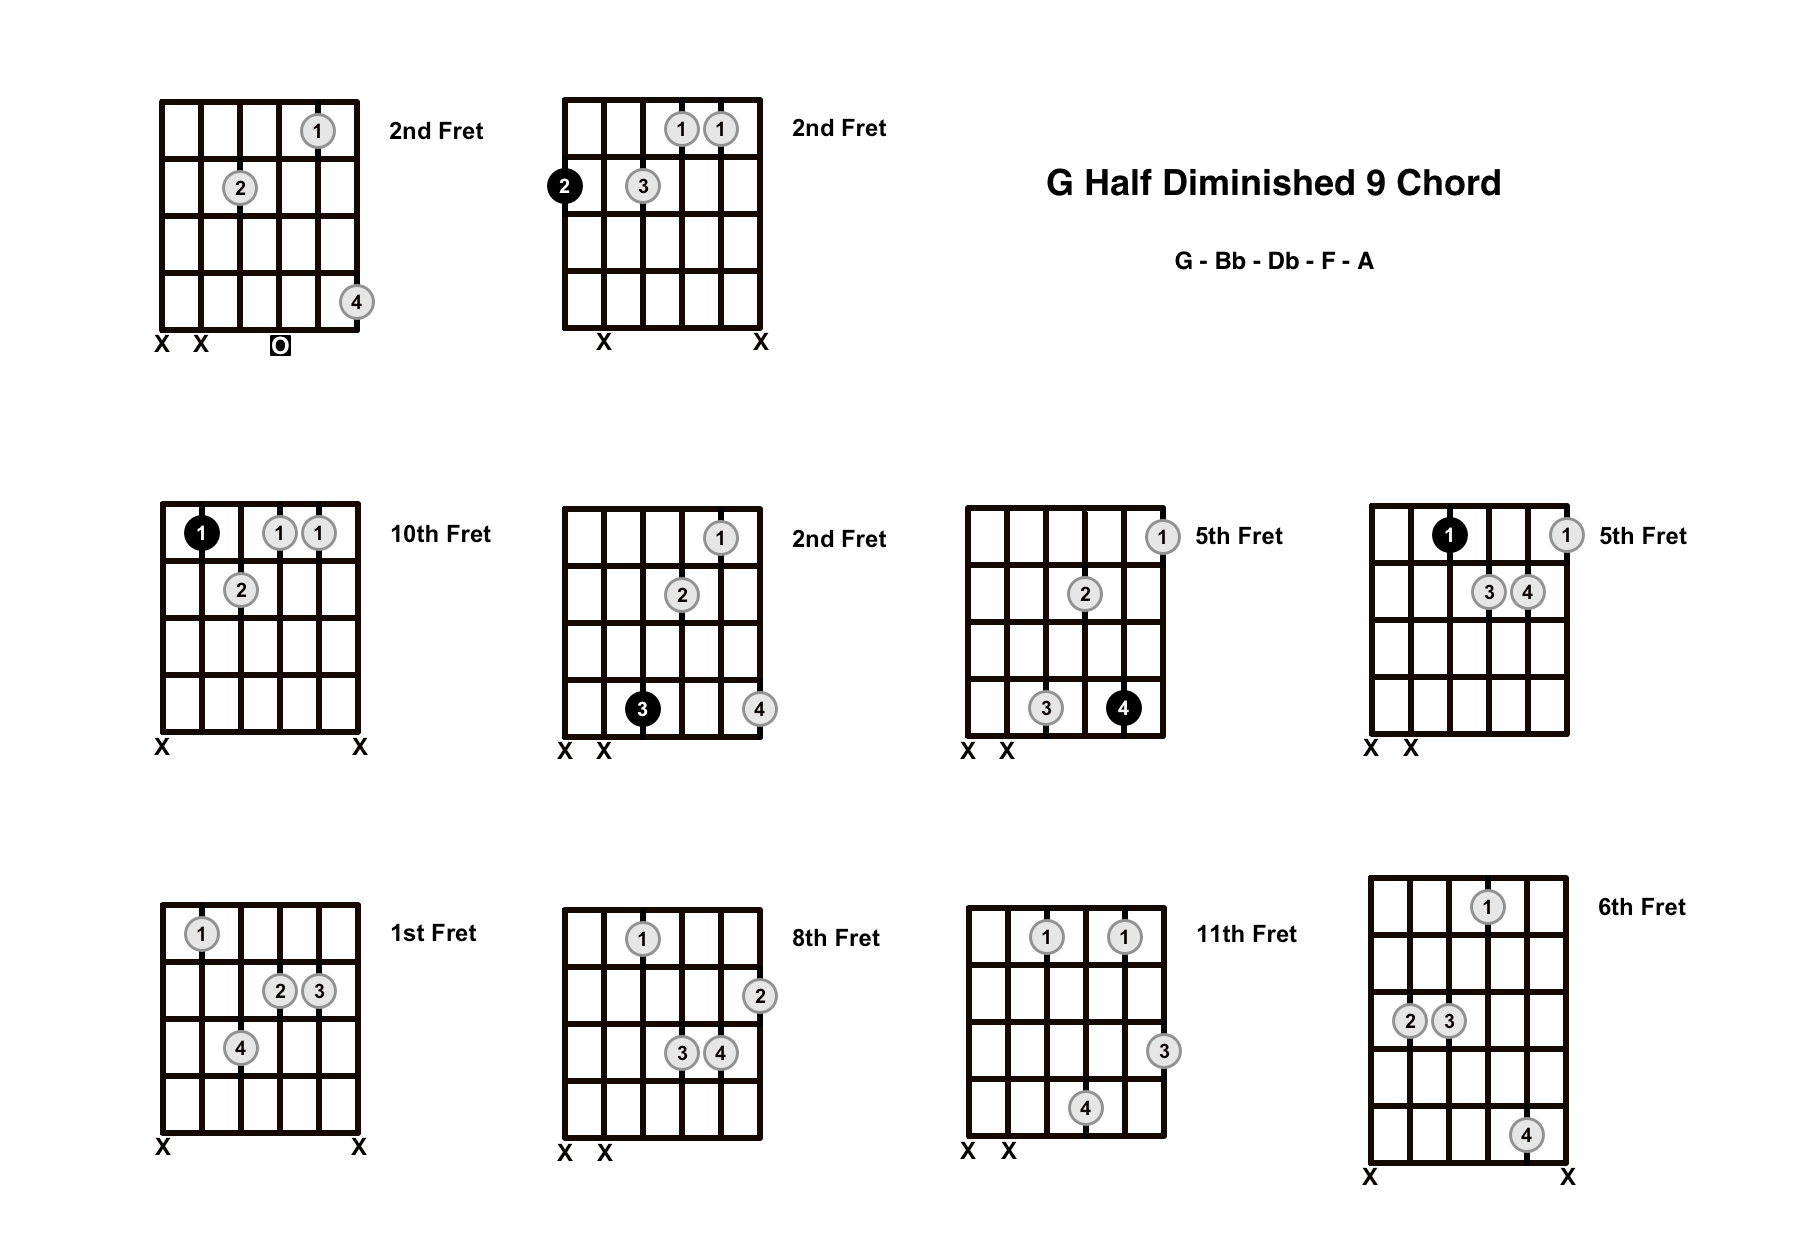 Gm9b5 Chord On The Guitar (G Half Diminished 9) – Diagrams, Finger Positions and Theory